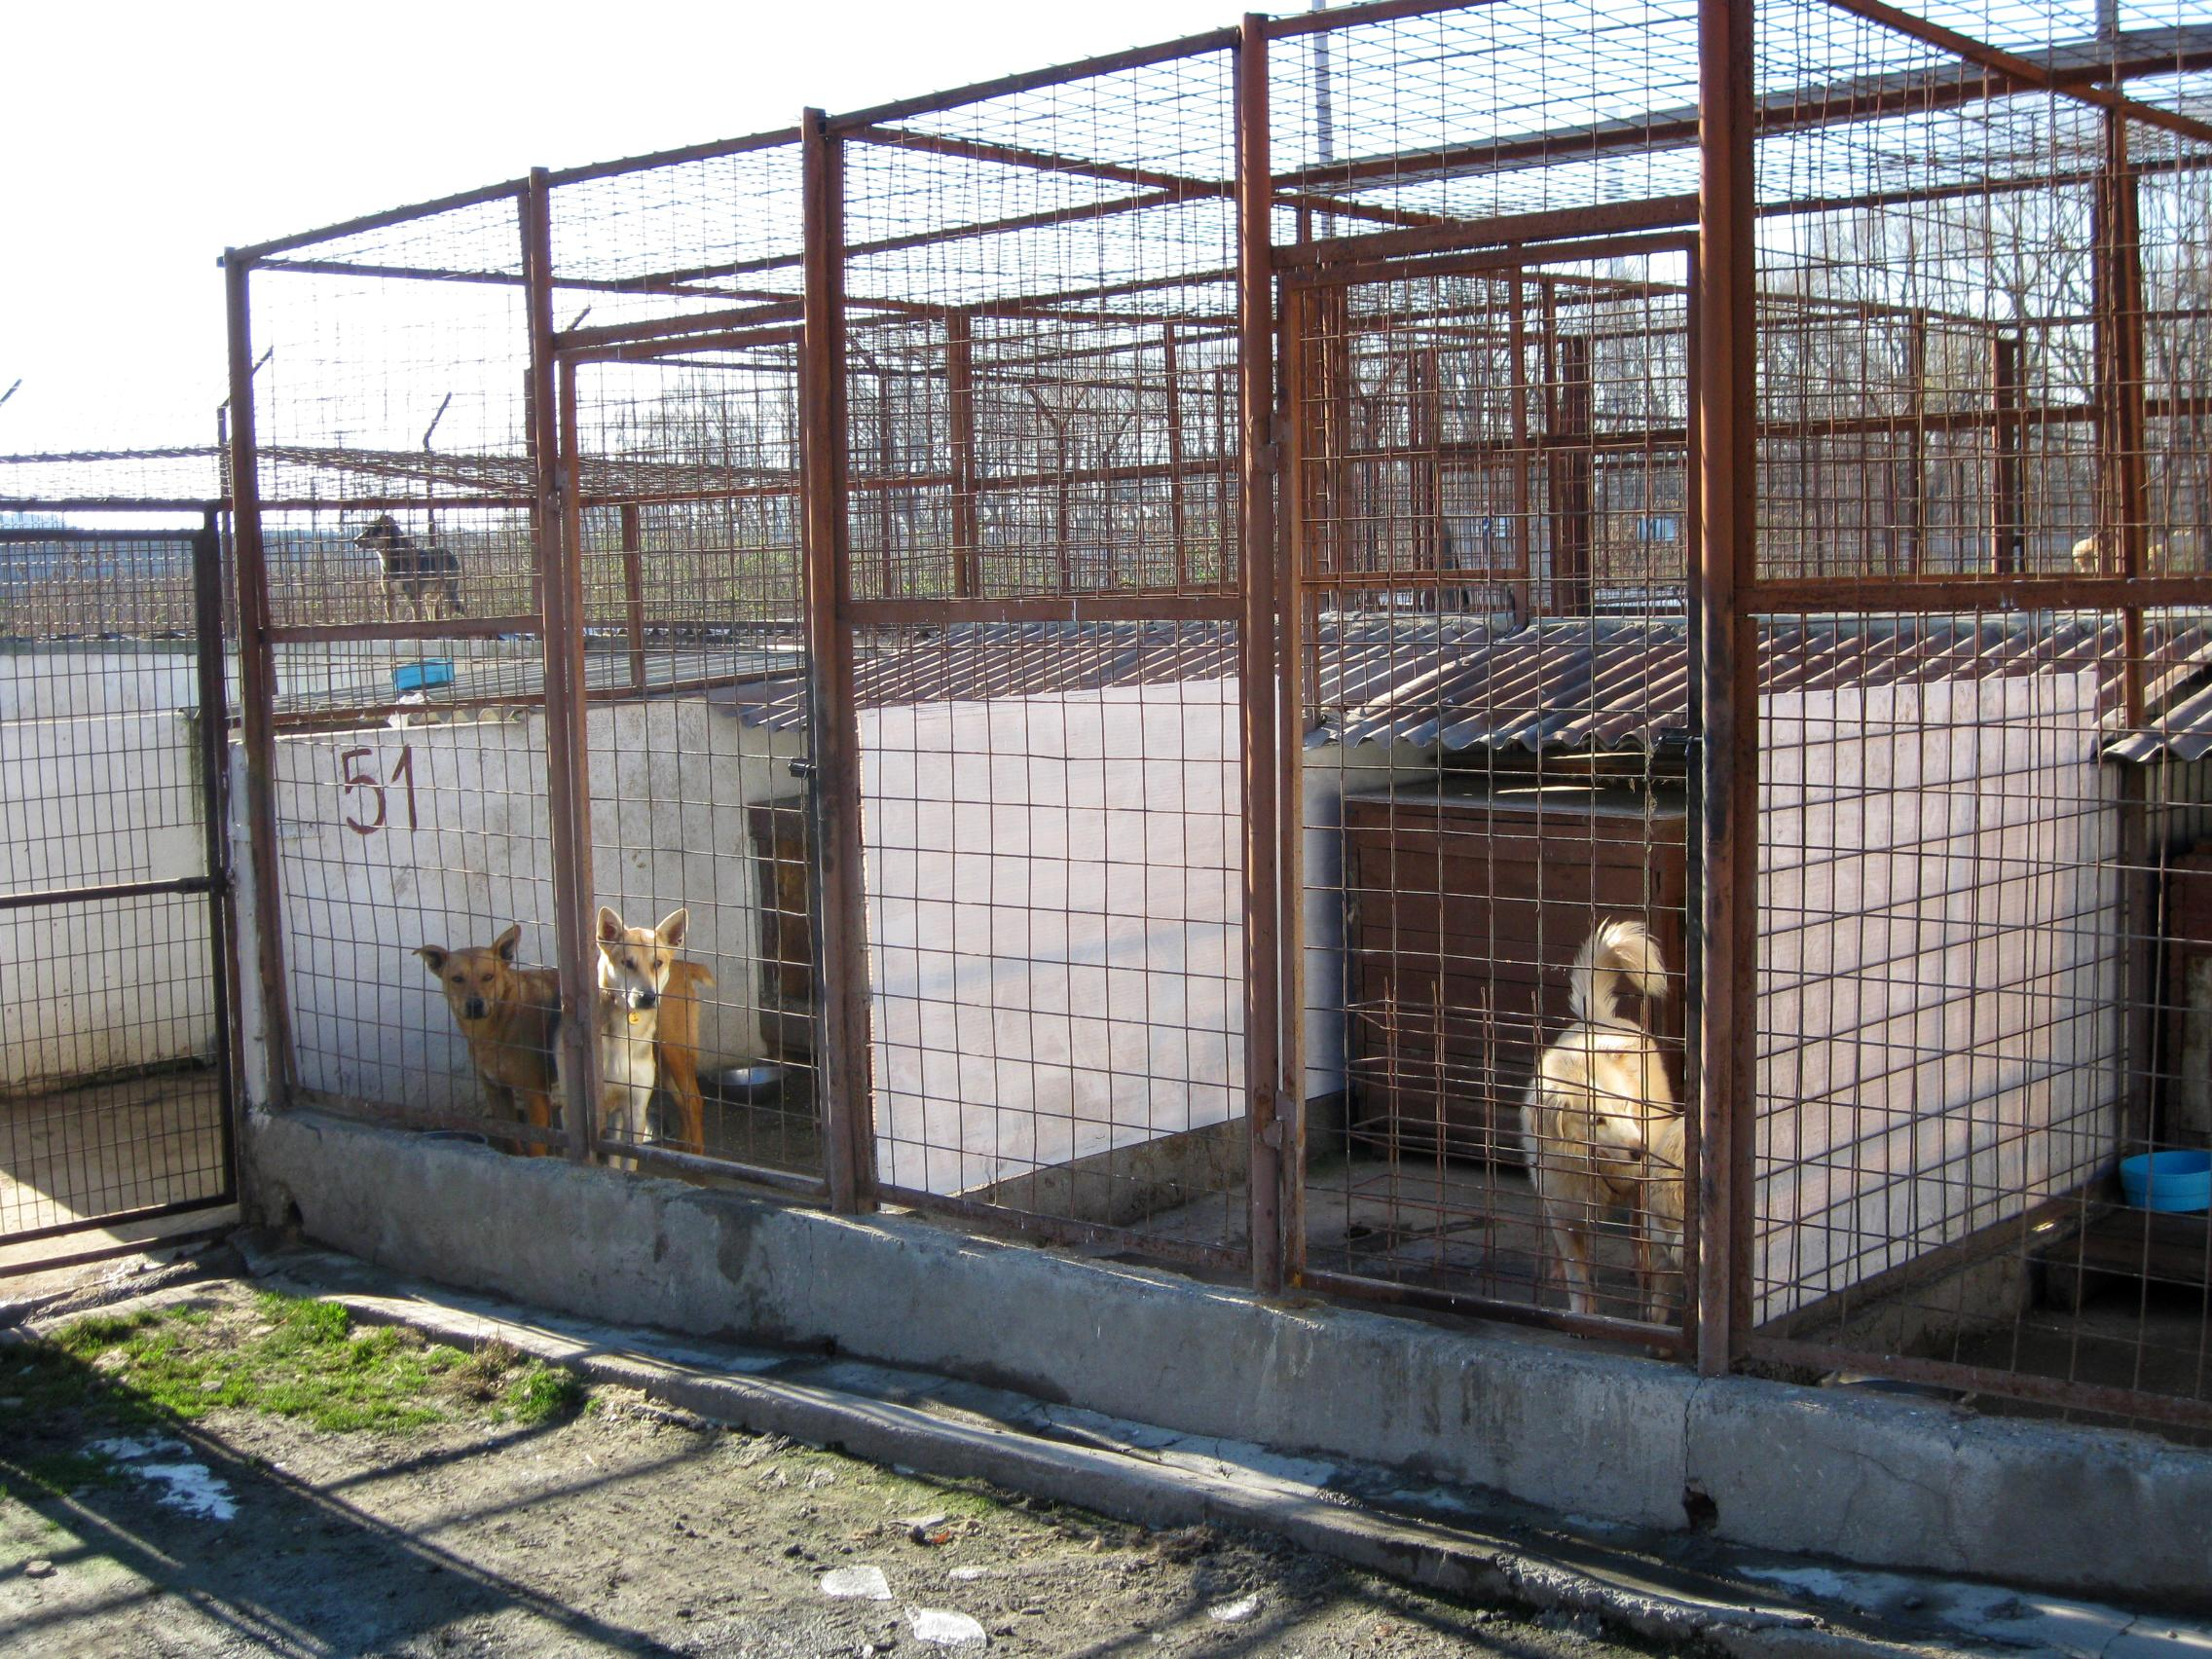 Dogs wait patiently for their turn to be walked by Veterinary Medicine interns in Romania.